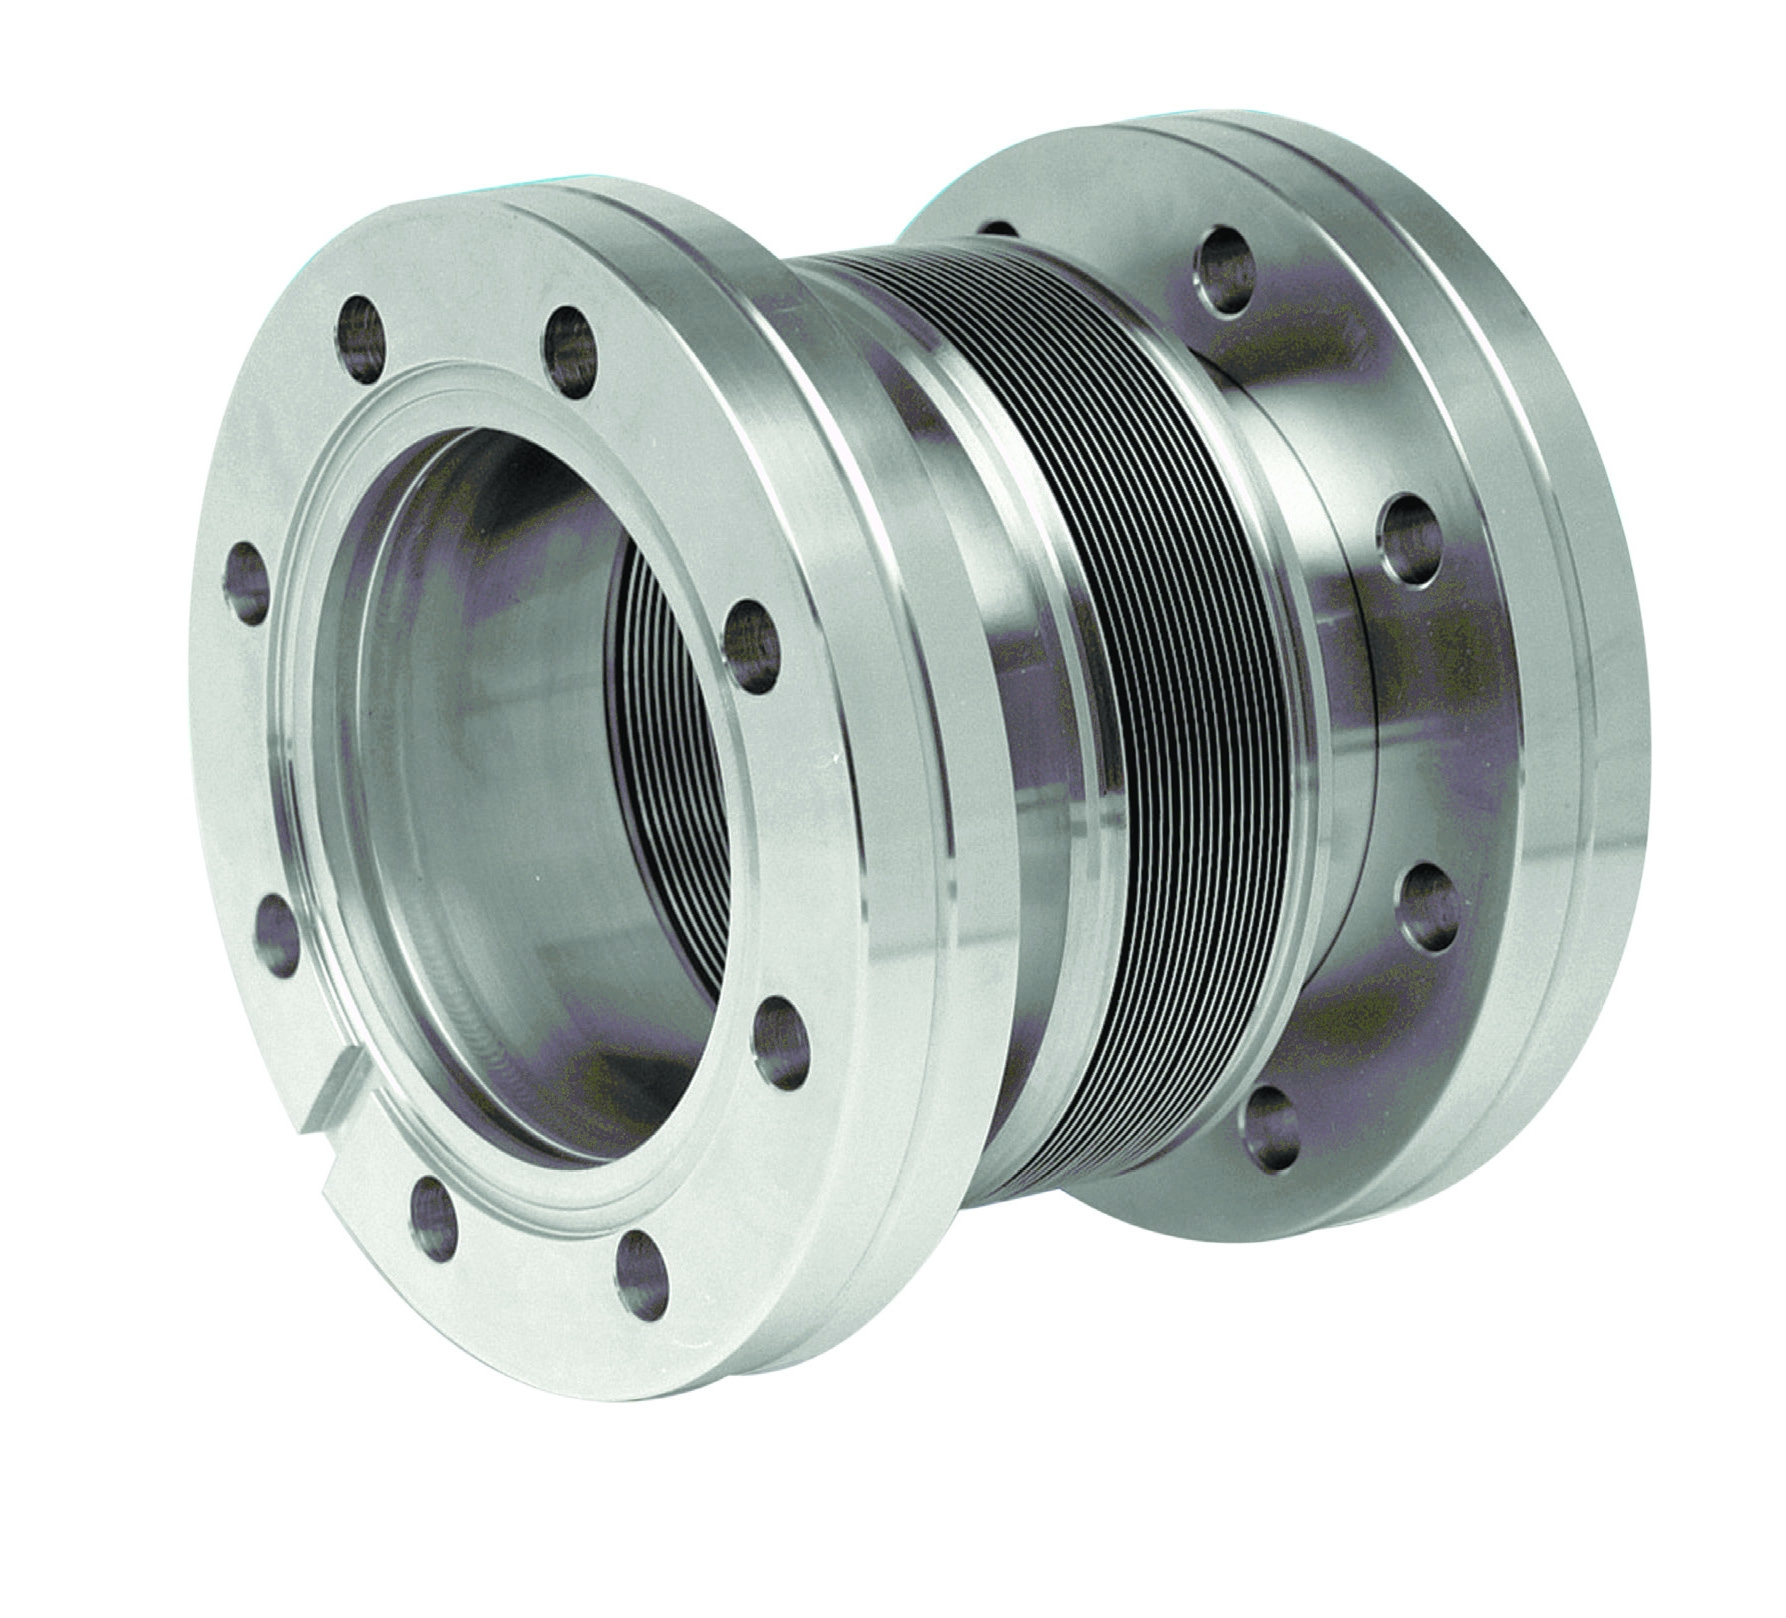 Edge welded bellow with DN150CF flanges, L = 114 - 264mm